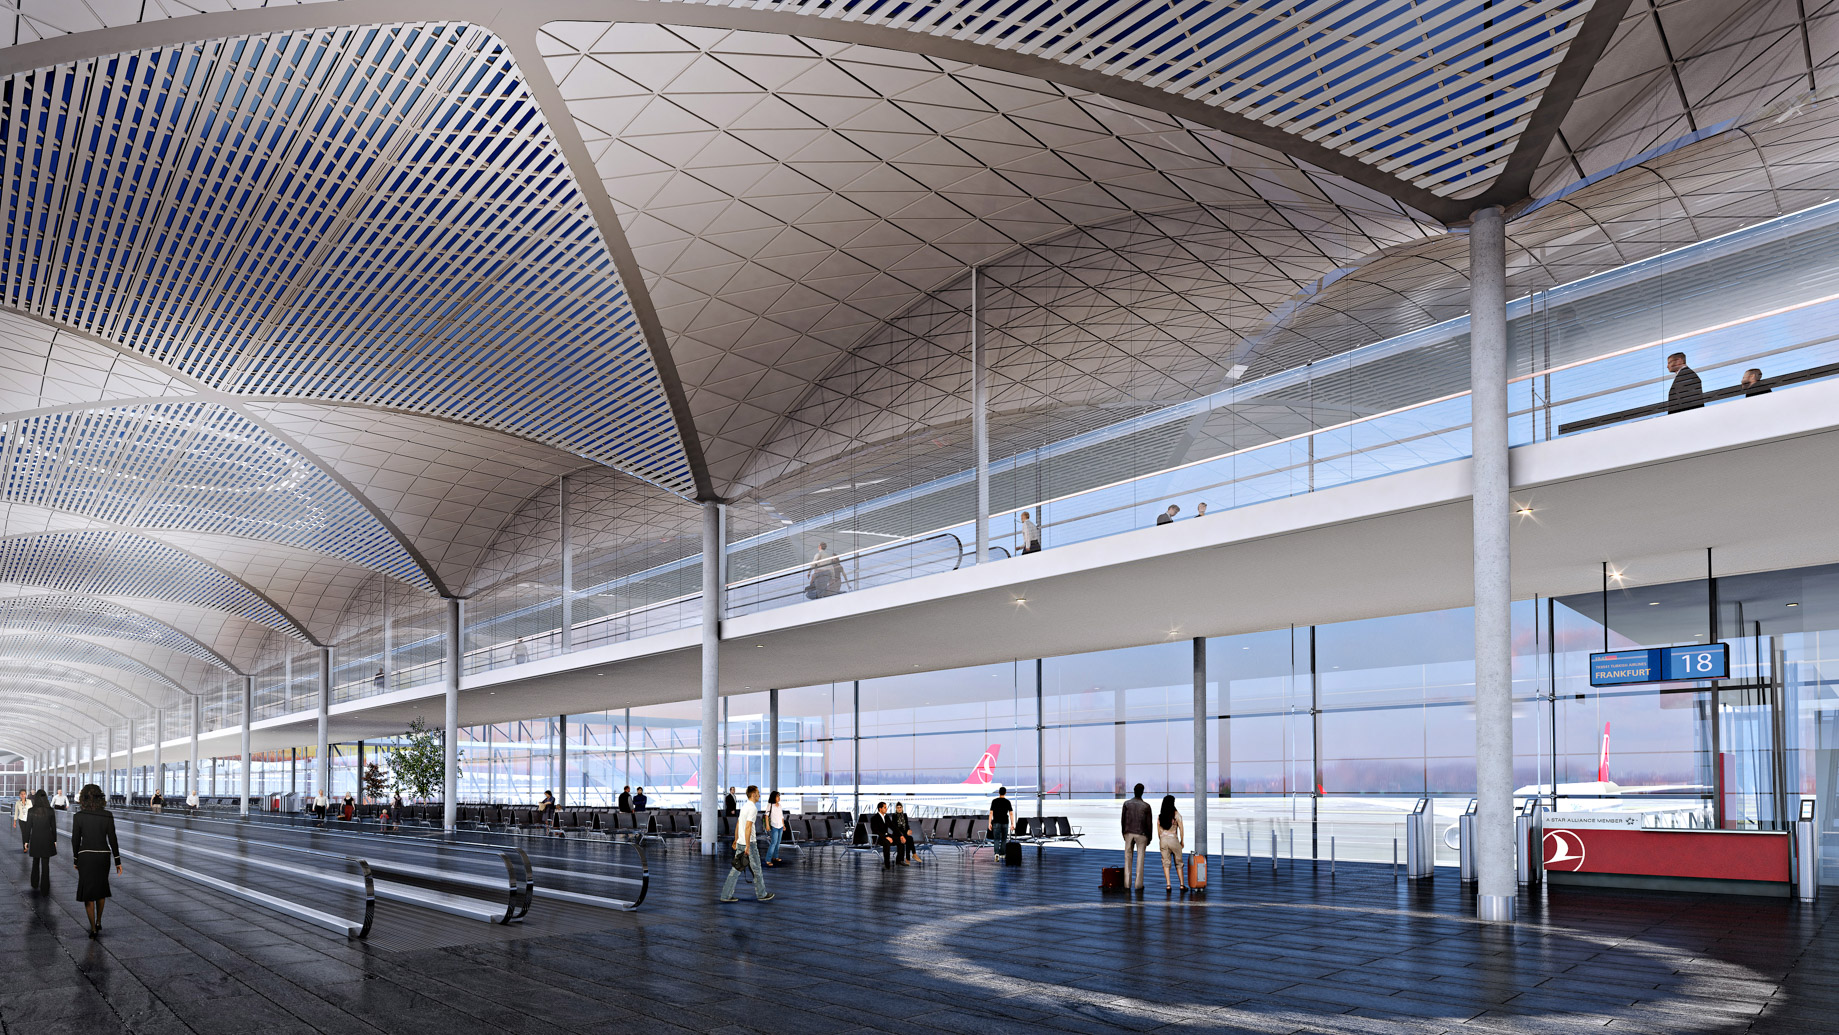 Departures - New International Airport in Istanbul, Turkey will be a Modern Architectural Masterpiece